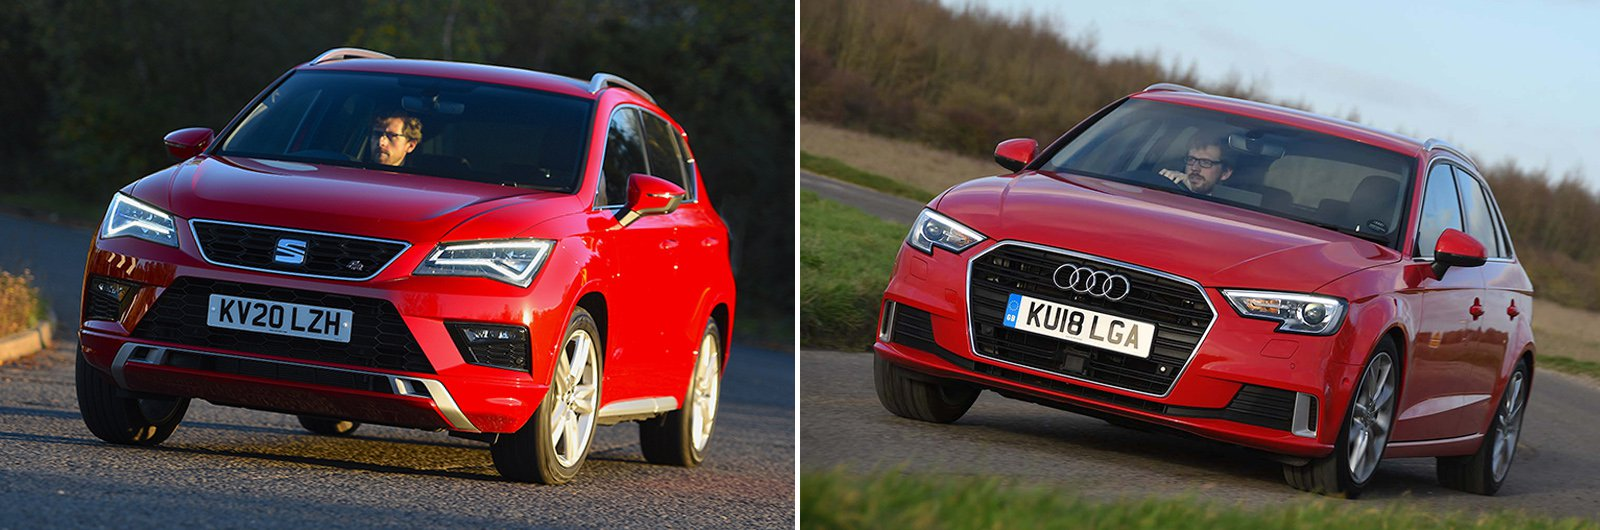 Seat Ateca and Audi A3